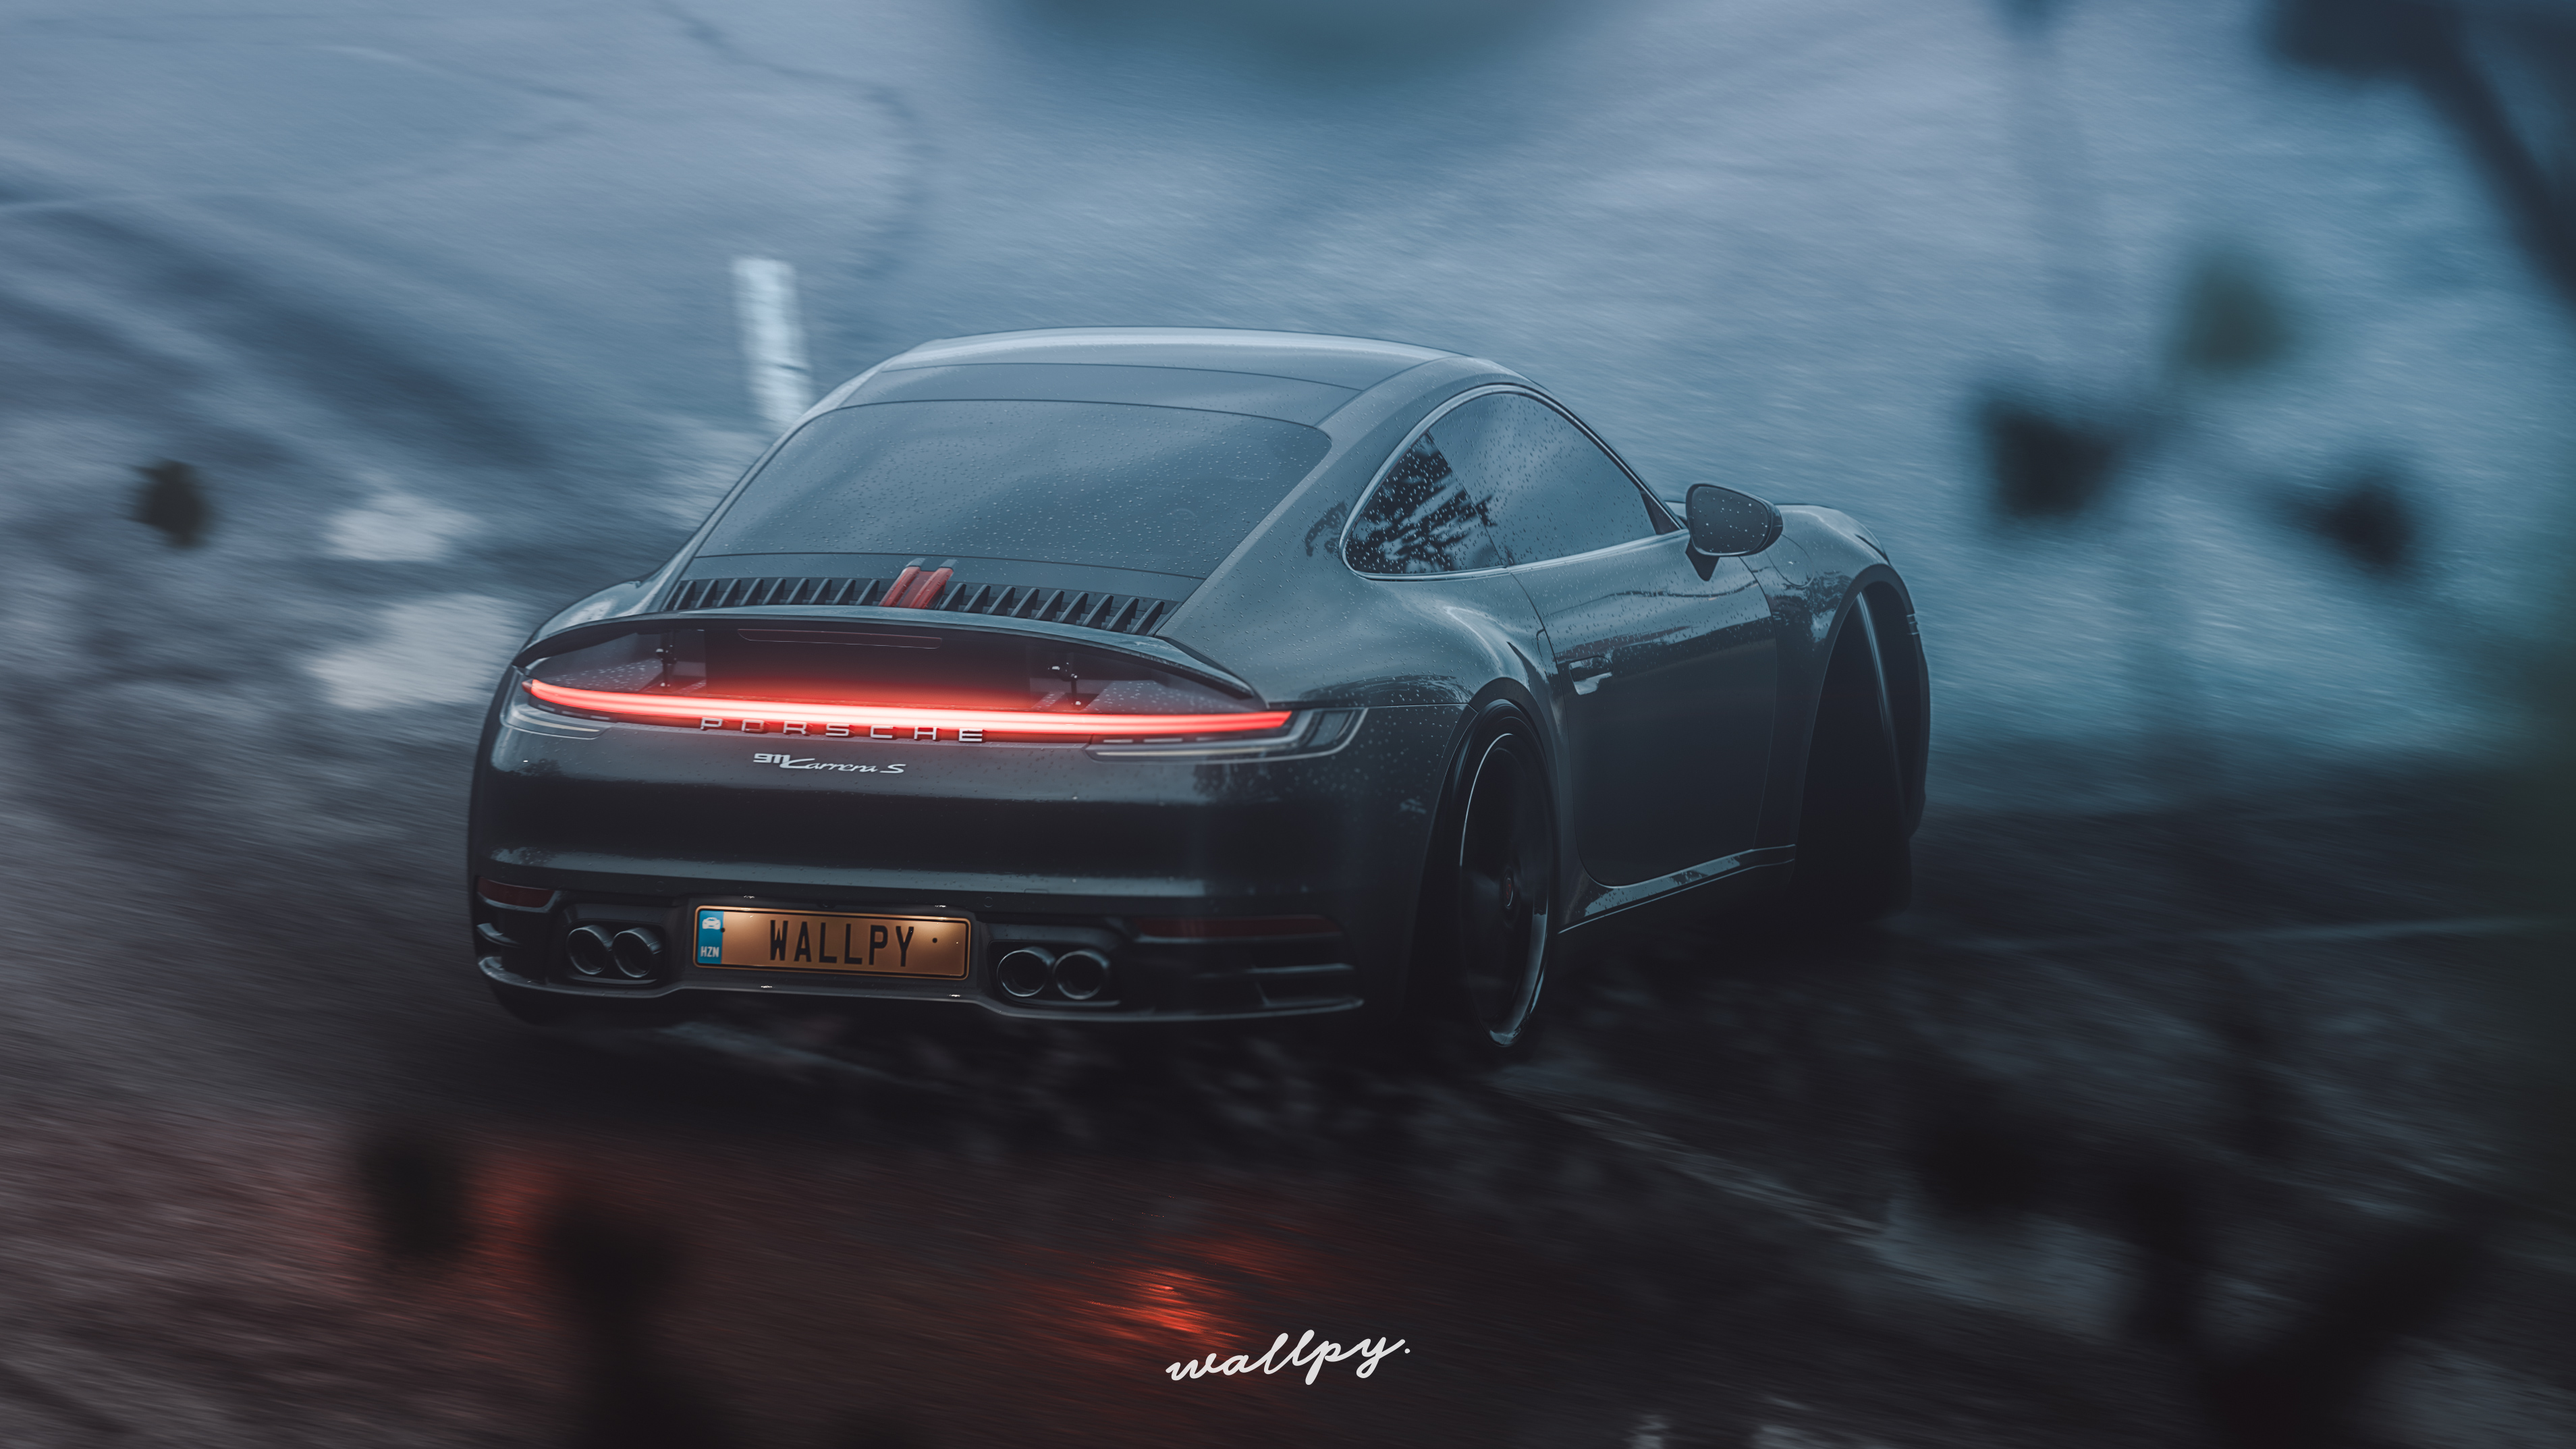 640x960 Forza Horizon 4 Porsche 911 Carrera S 4k Iphone 4 Iphone 4s Hd 4k Wallpapers Images Backgrounds Photos And Pictures